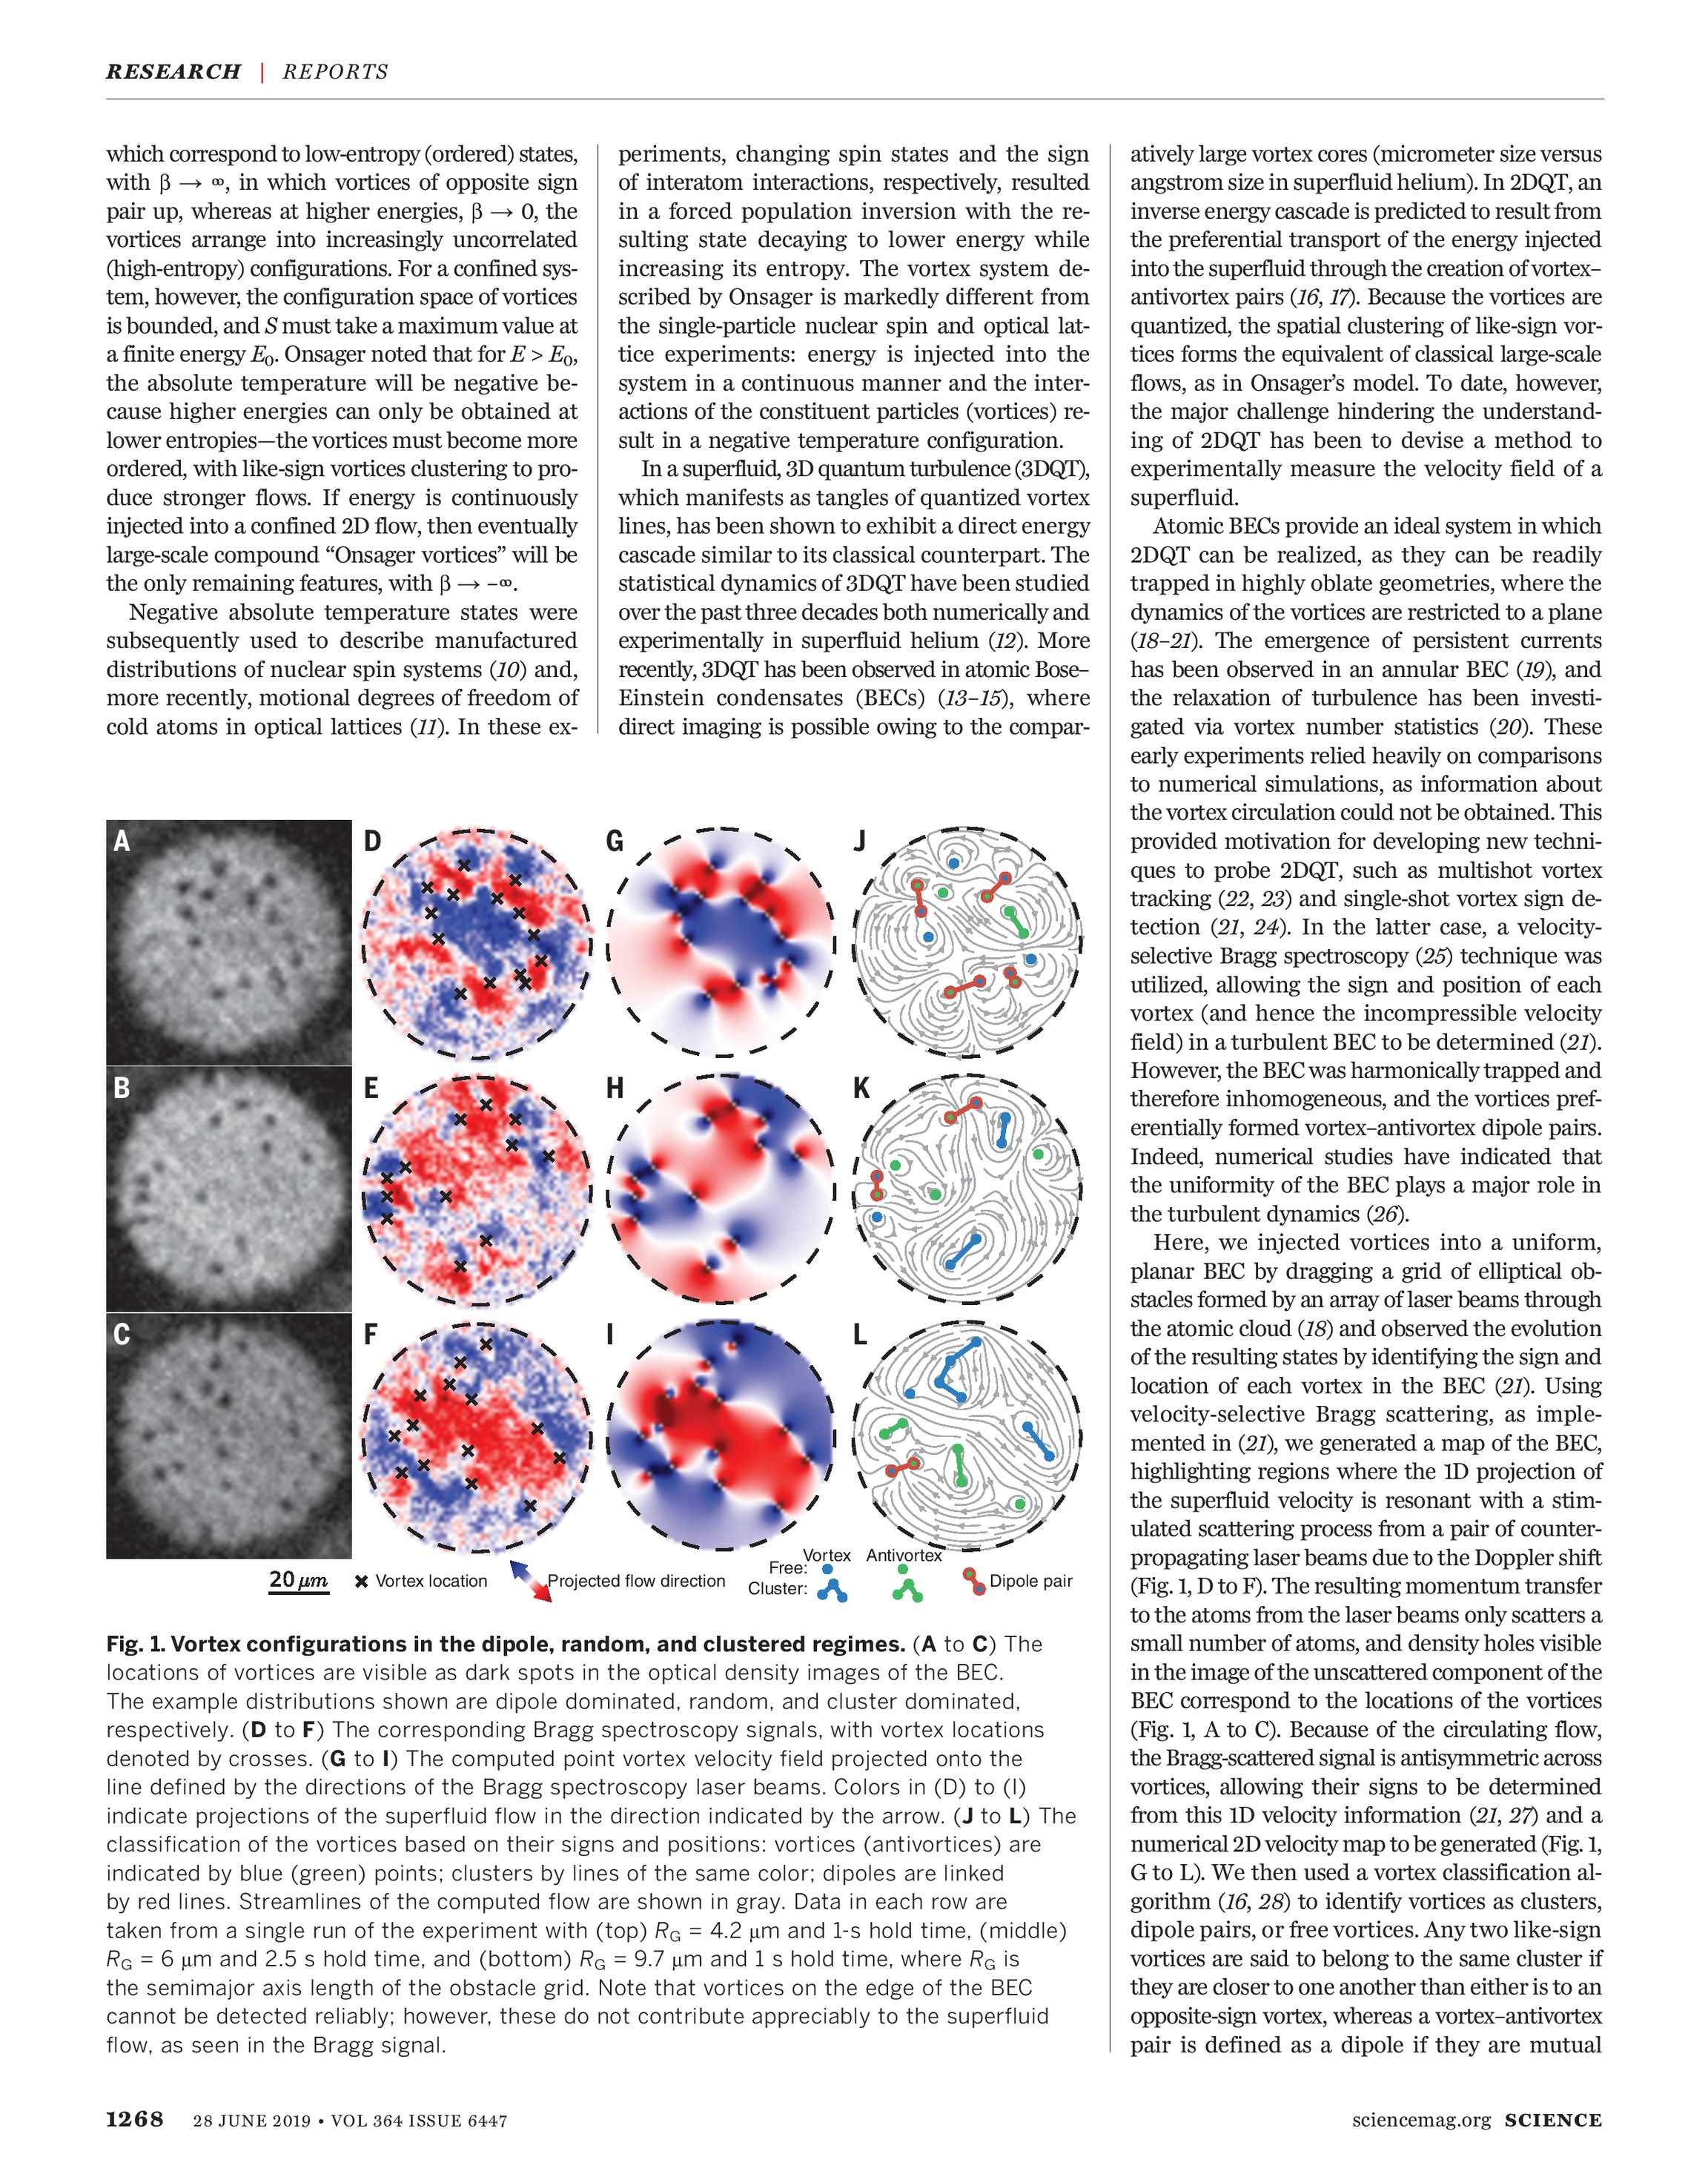 Science Magazine - June 28, 2019 - page 1267